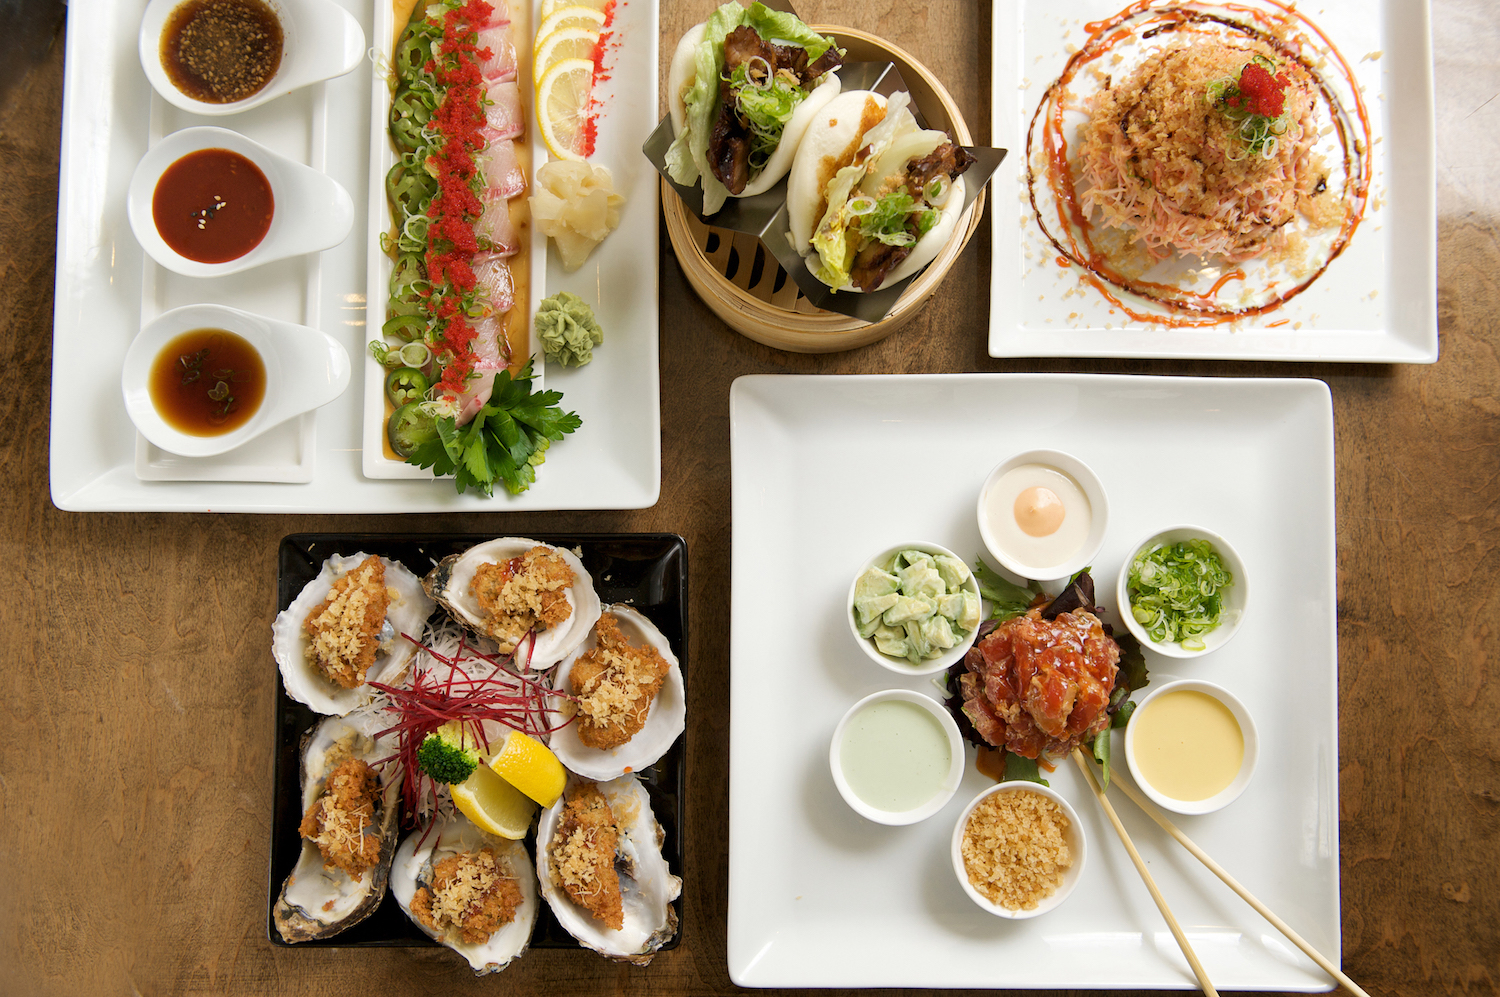 Koi Kokoro, a Japanese kitchen in Islip offers tapas-style menu items. Clockwise from top left; yellowtail jalapeno flight, Kobe pork belly bun, Miru mountain specialty roll, toro tartar and fried oysters. (Feb. 5, 2015) Credit: Doug Young